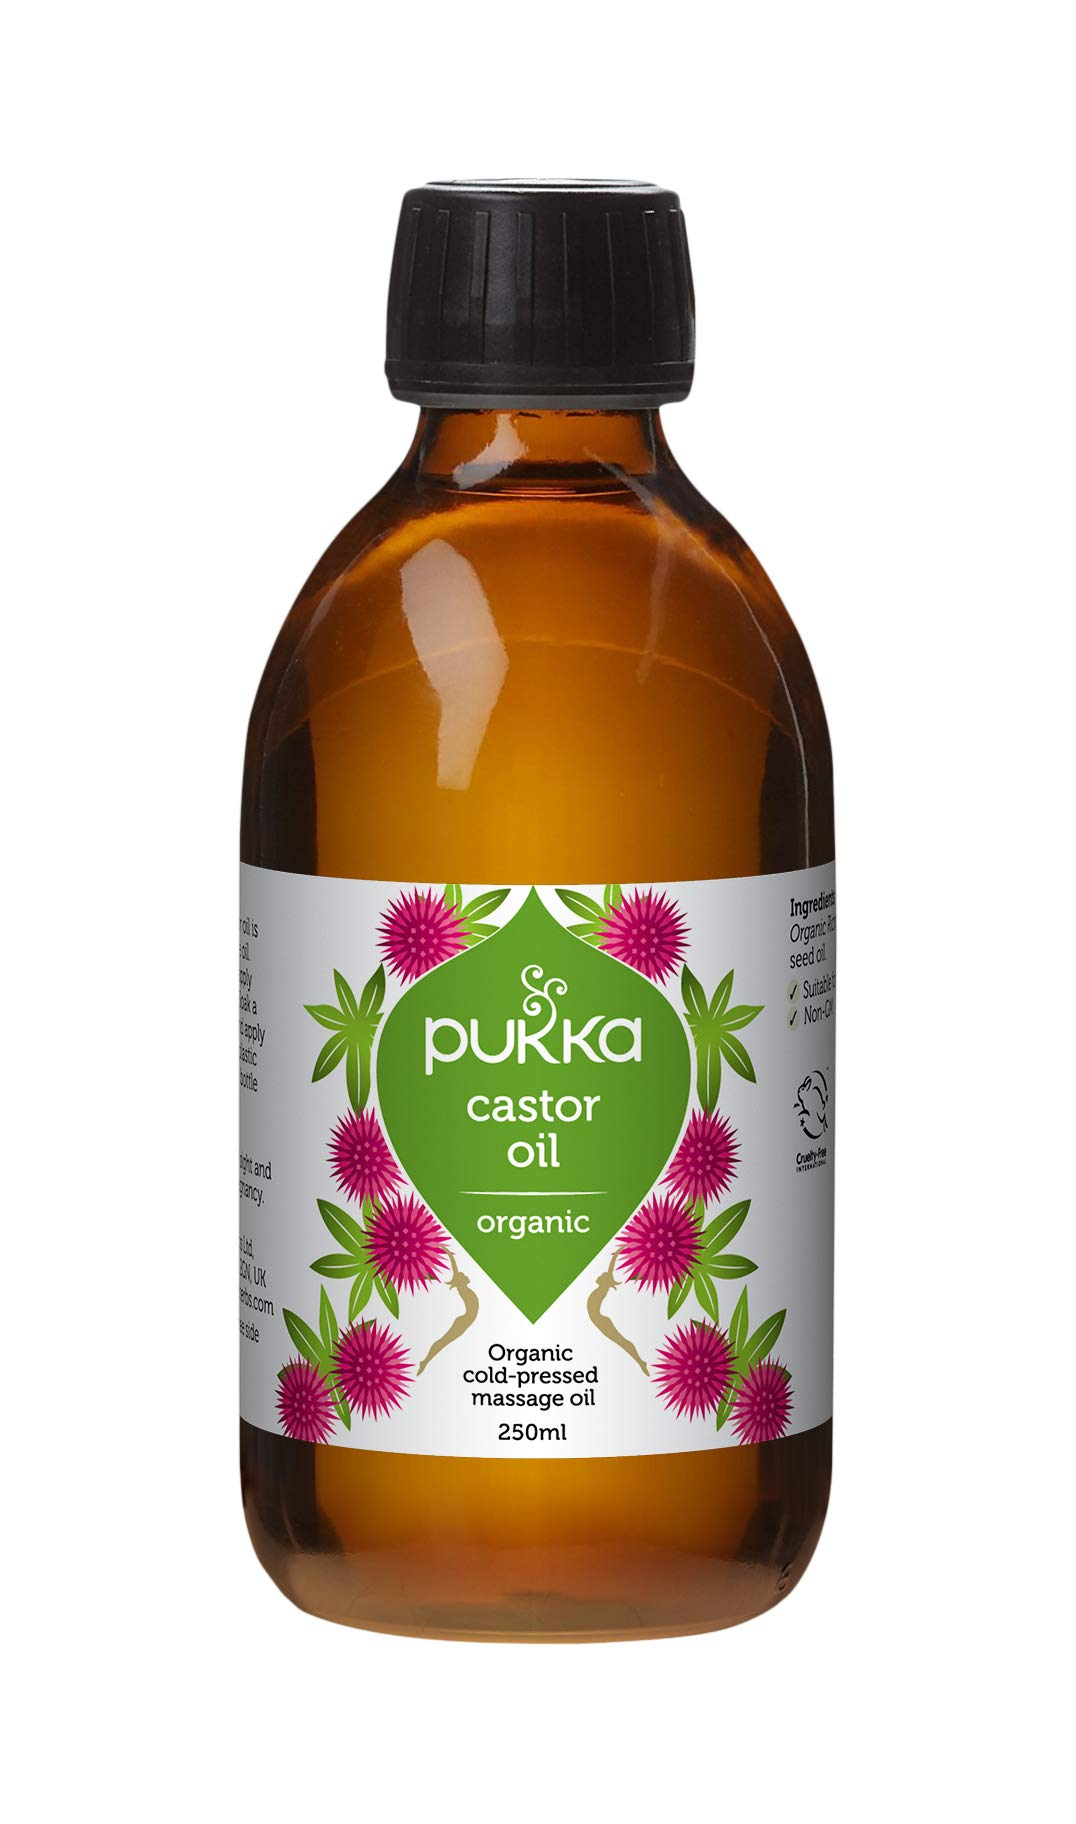 Pukka Herbs Castor Oil, Organic & Cold-Pressed, 250ml Bottle